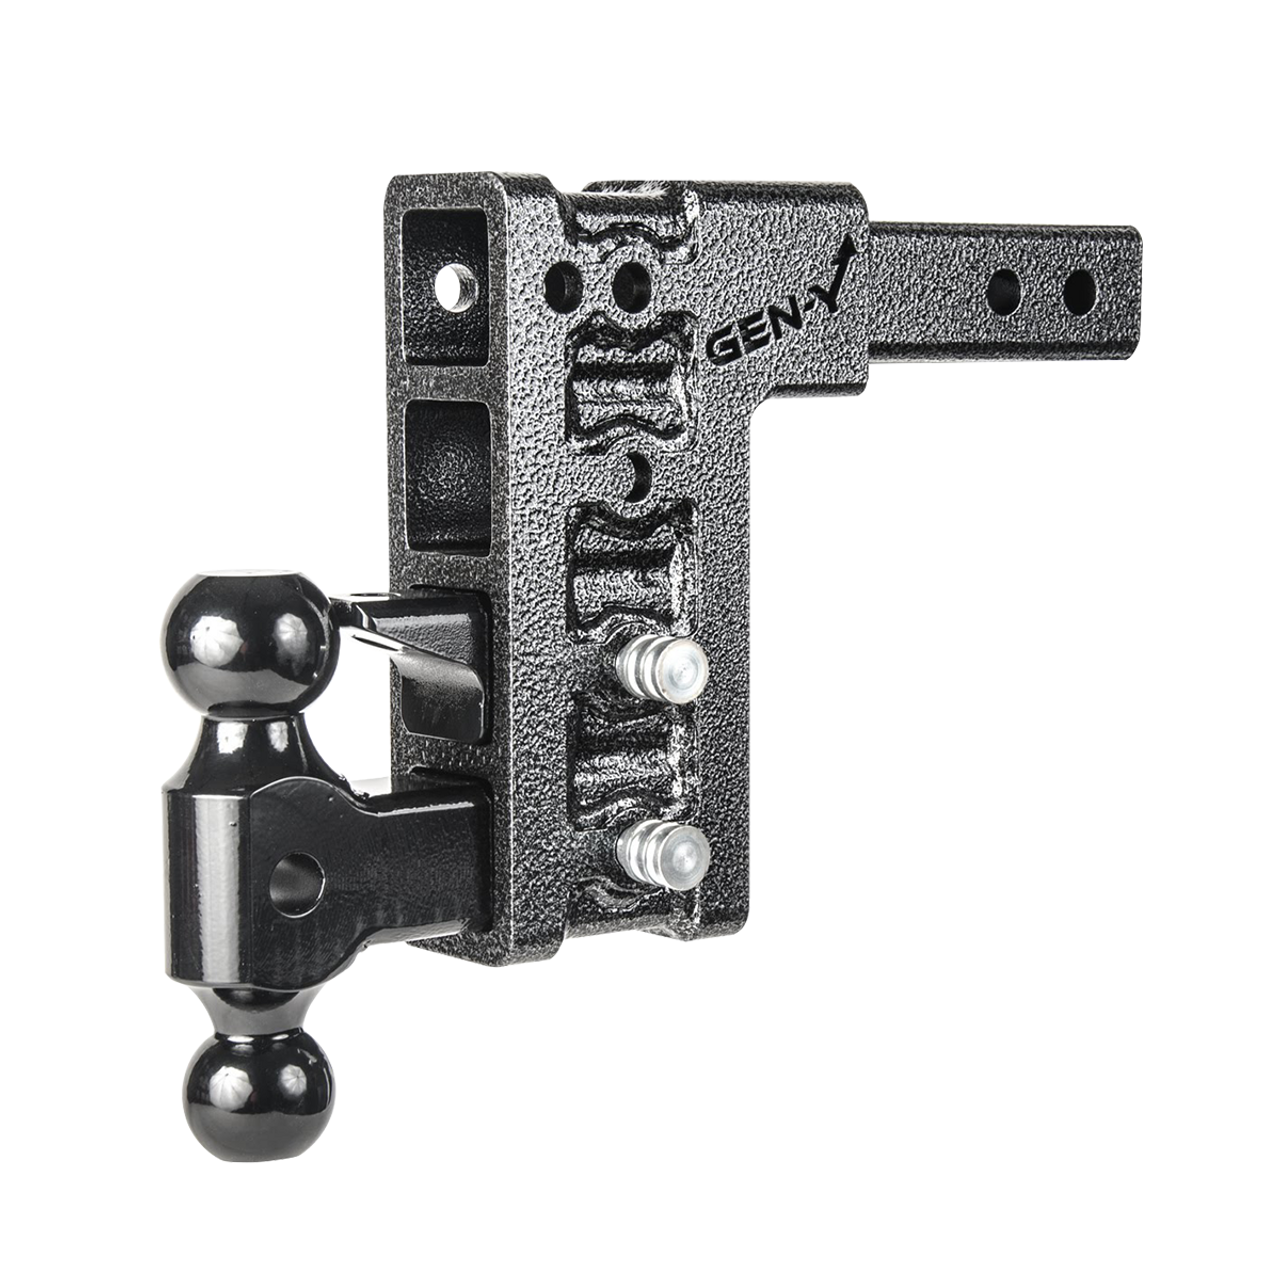 GH-524 --- Four Position Mega-Duty Shank with Dual Ball and Pintle - 16,000 lb Capacity